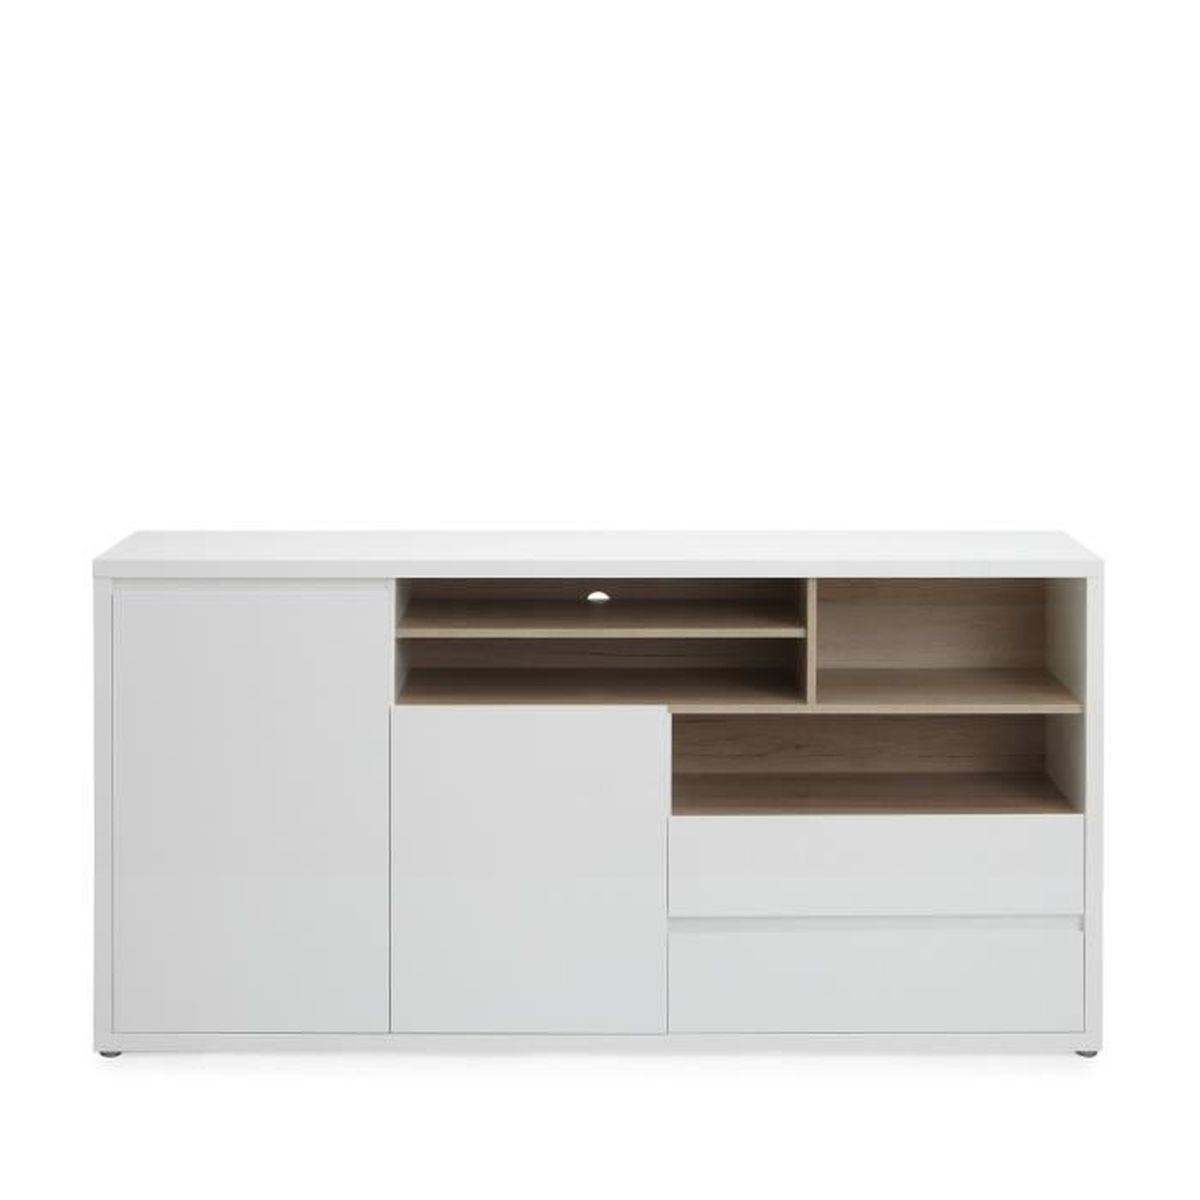 gen ve buffet bas 2 portes et 2 tiroirs coloris blanc. Black Bedroom Furniture Sets. Home Design Ideas